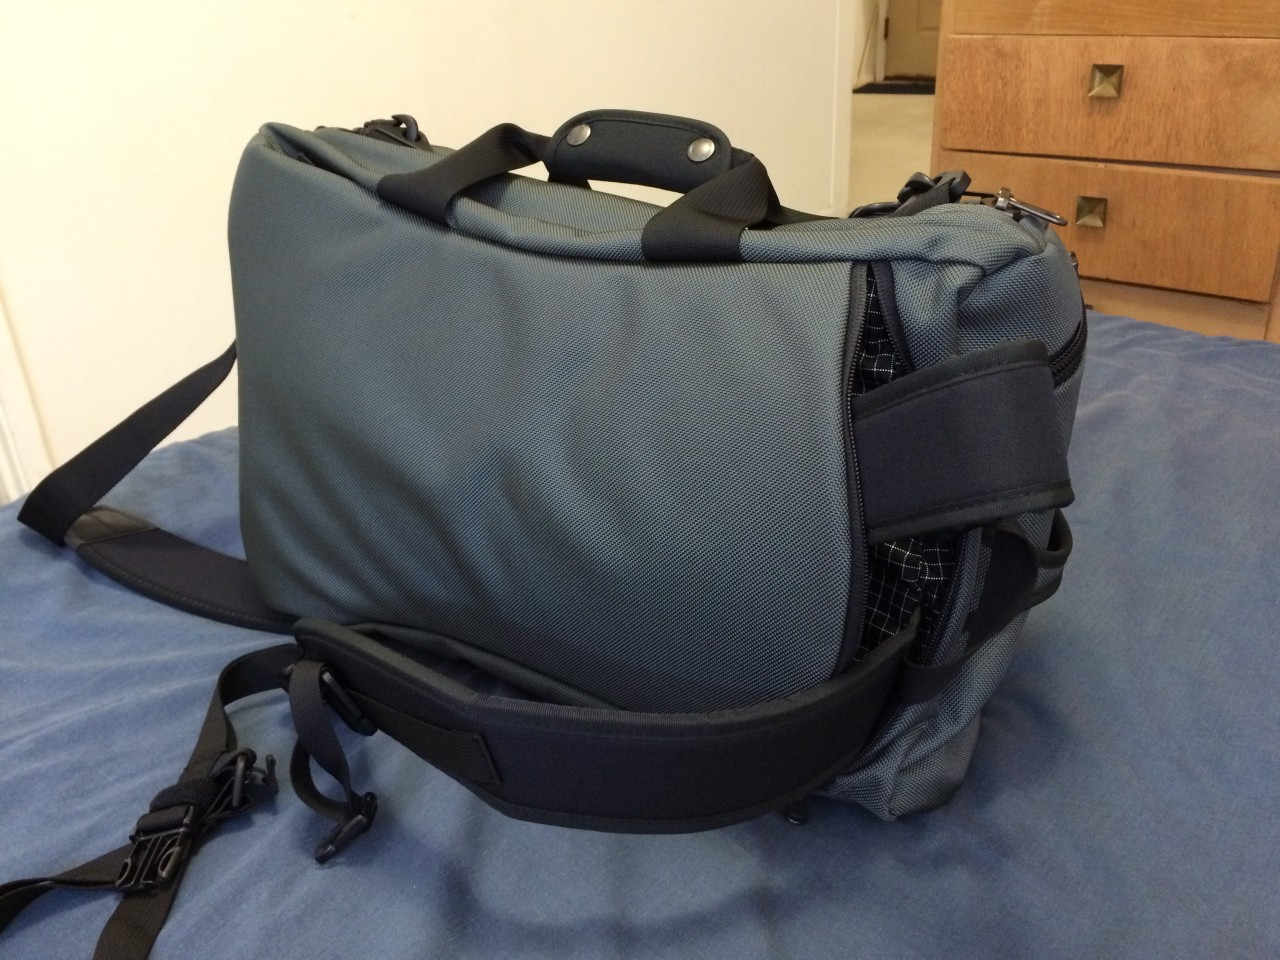 Tom Bihn Aeronaut 30 backpack strap removal